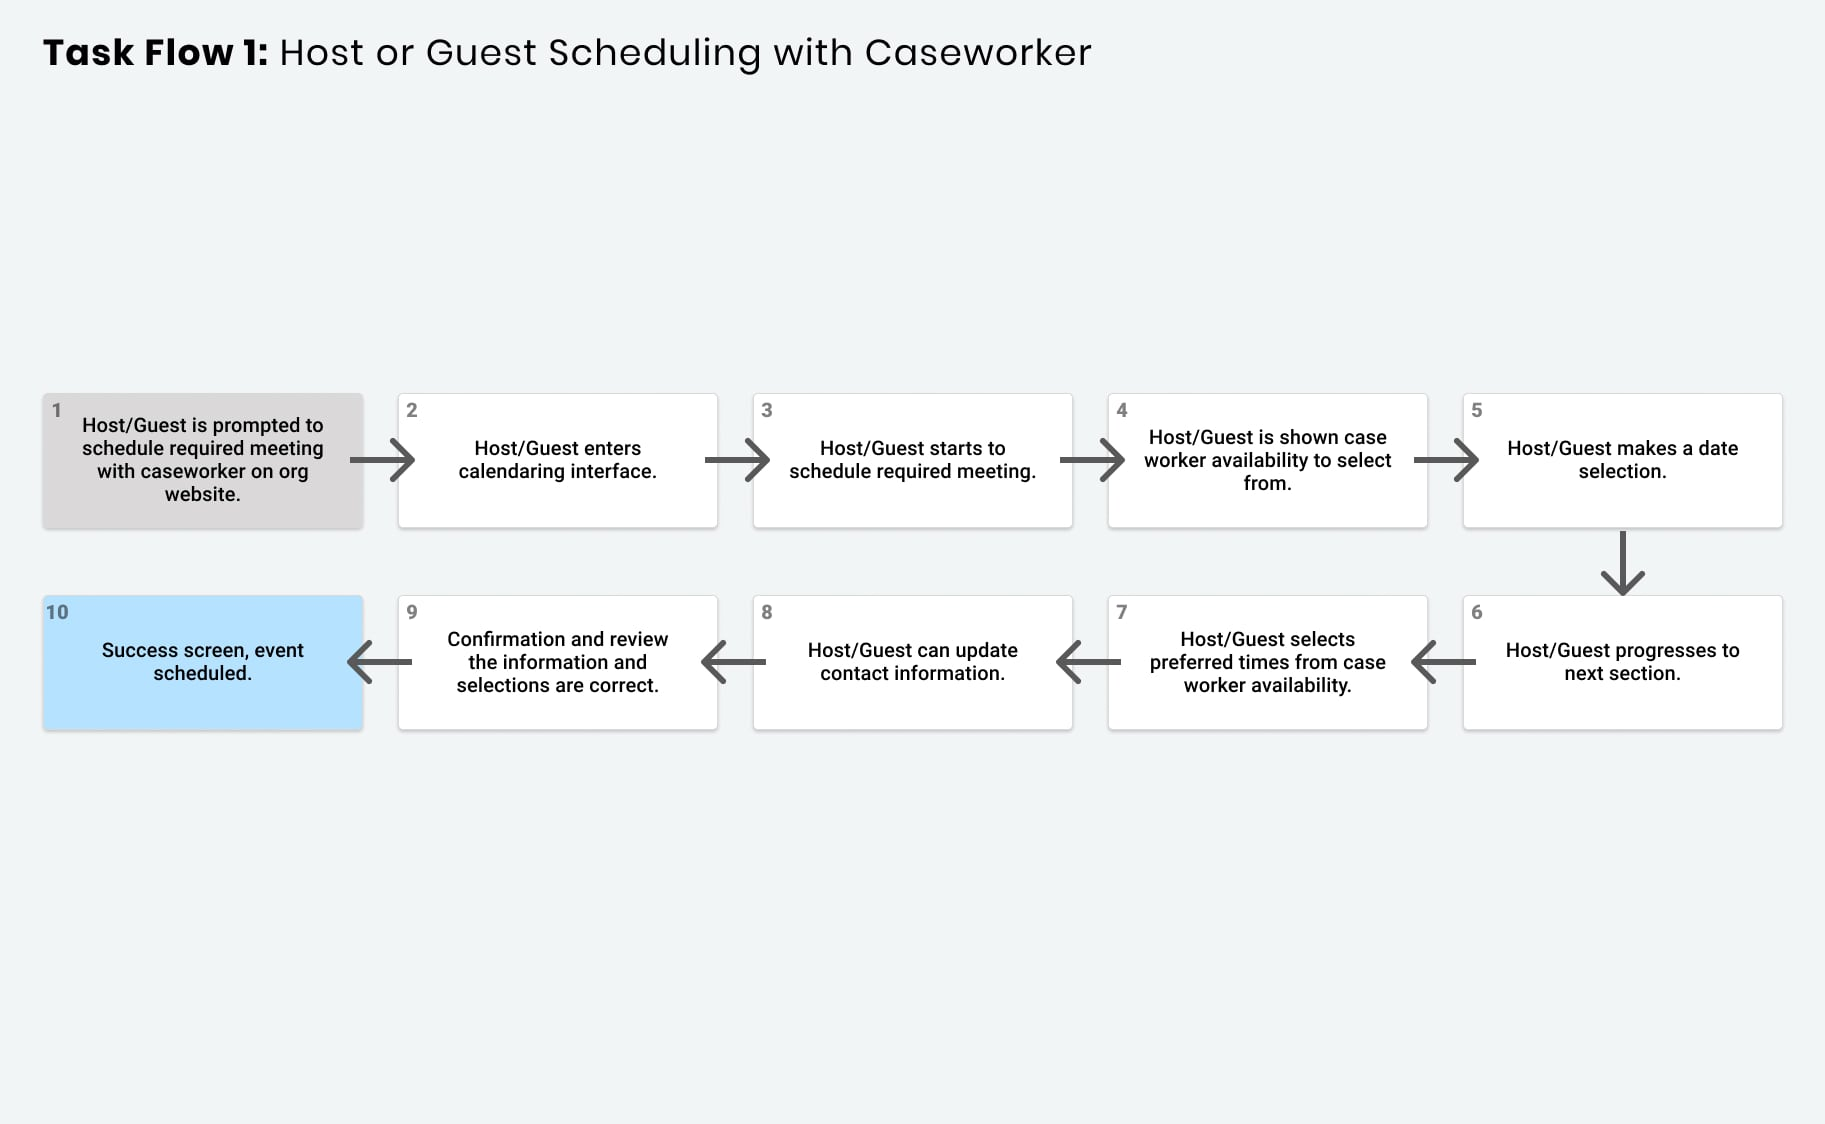 task flow for the host and guest single selection